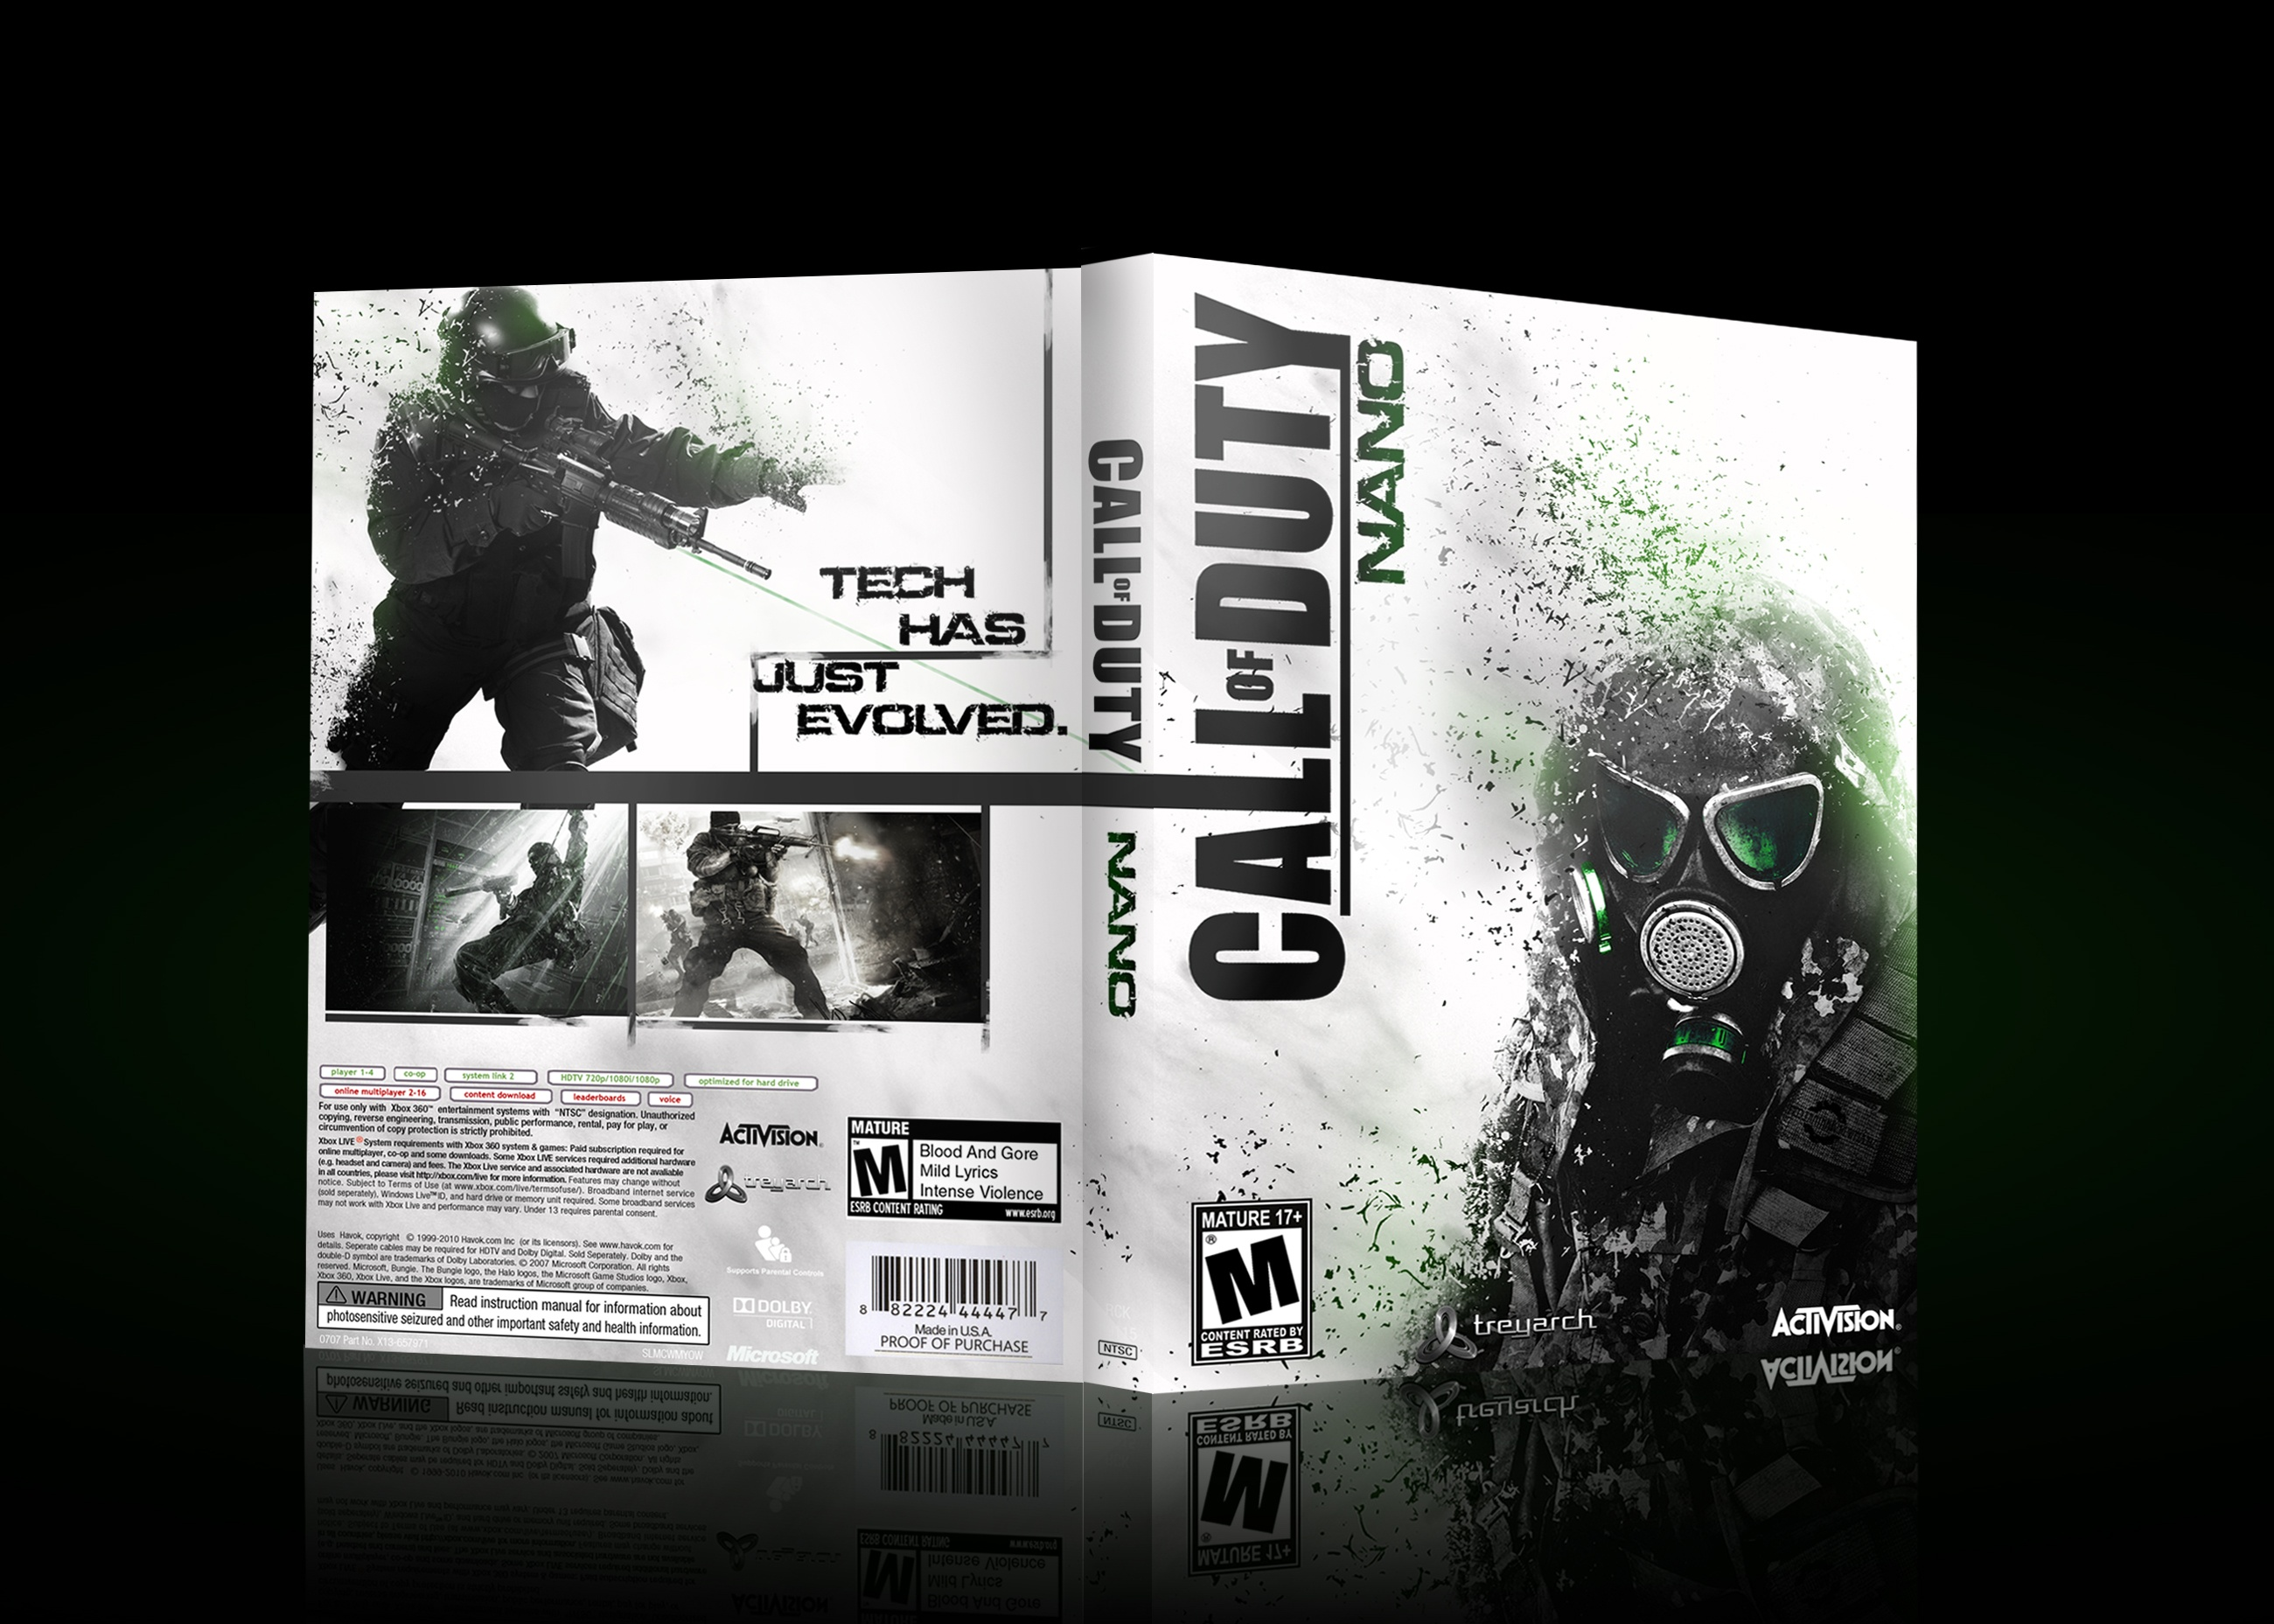 Call of Duty Nano box cover